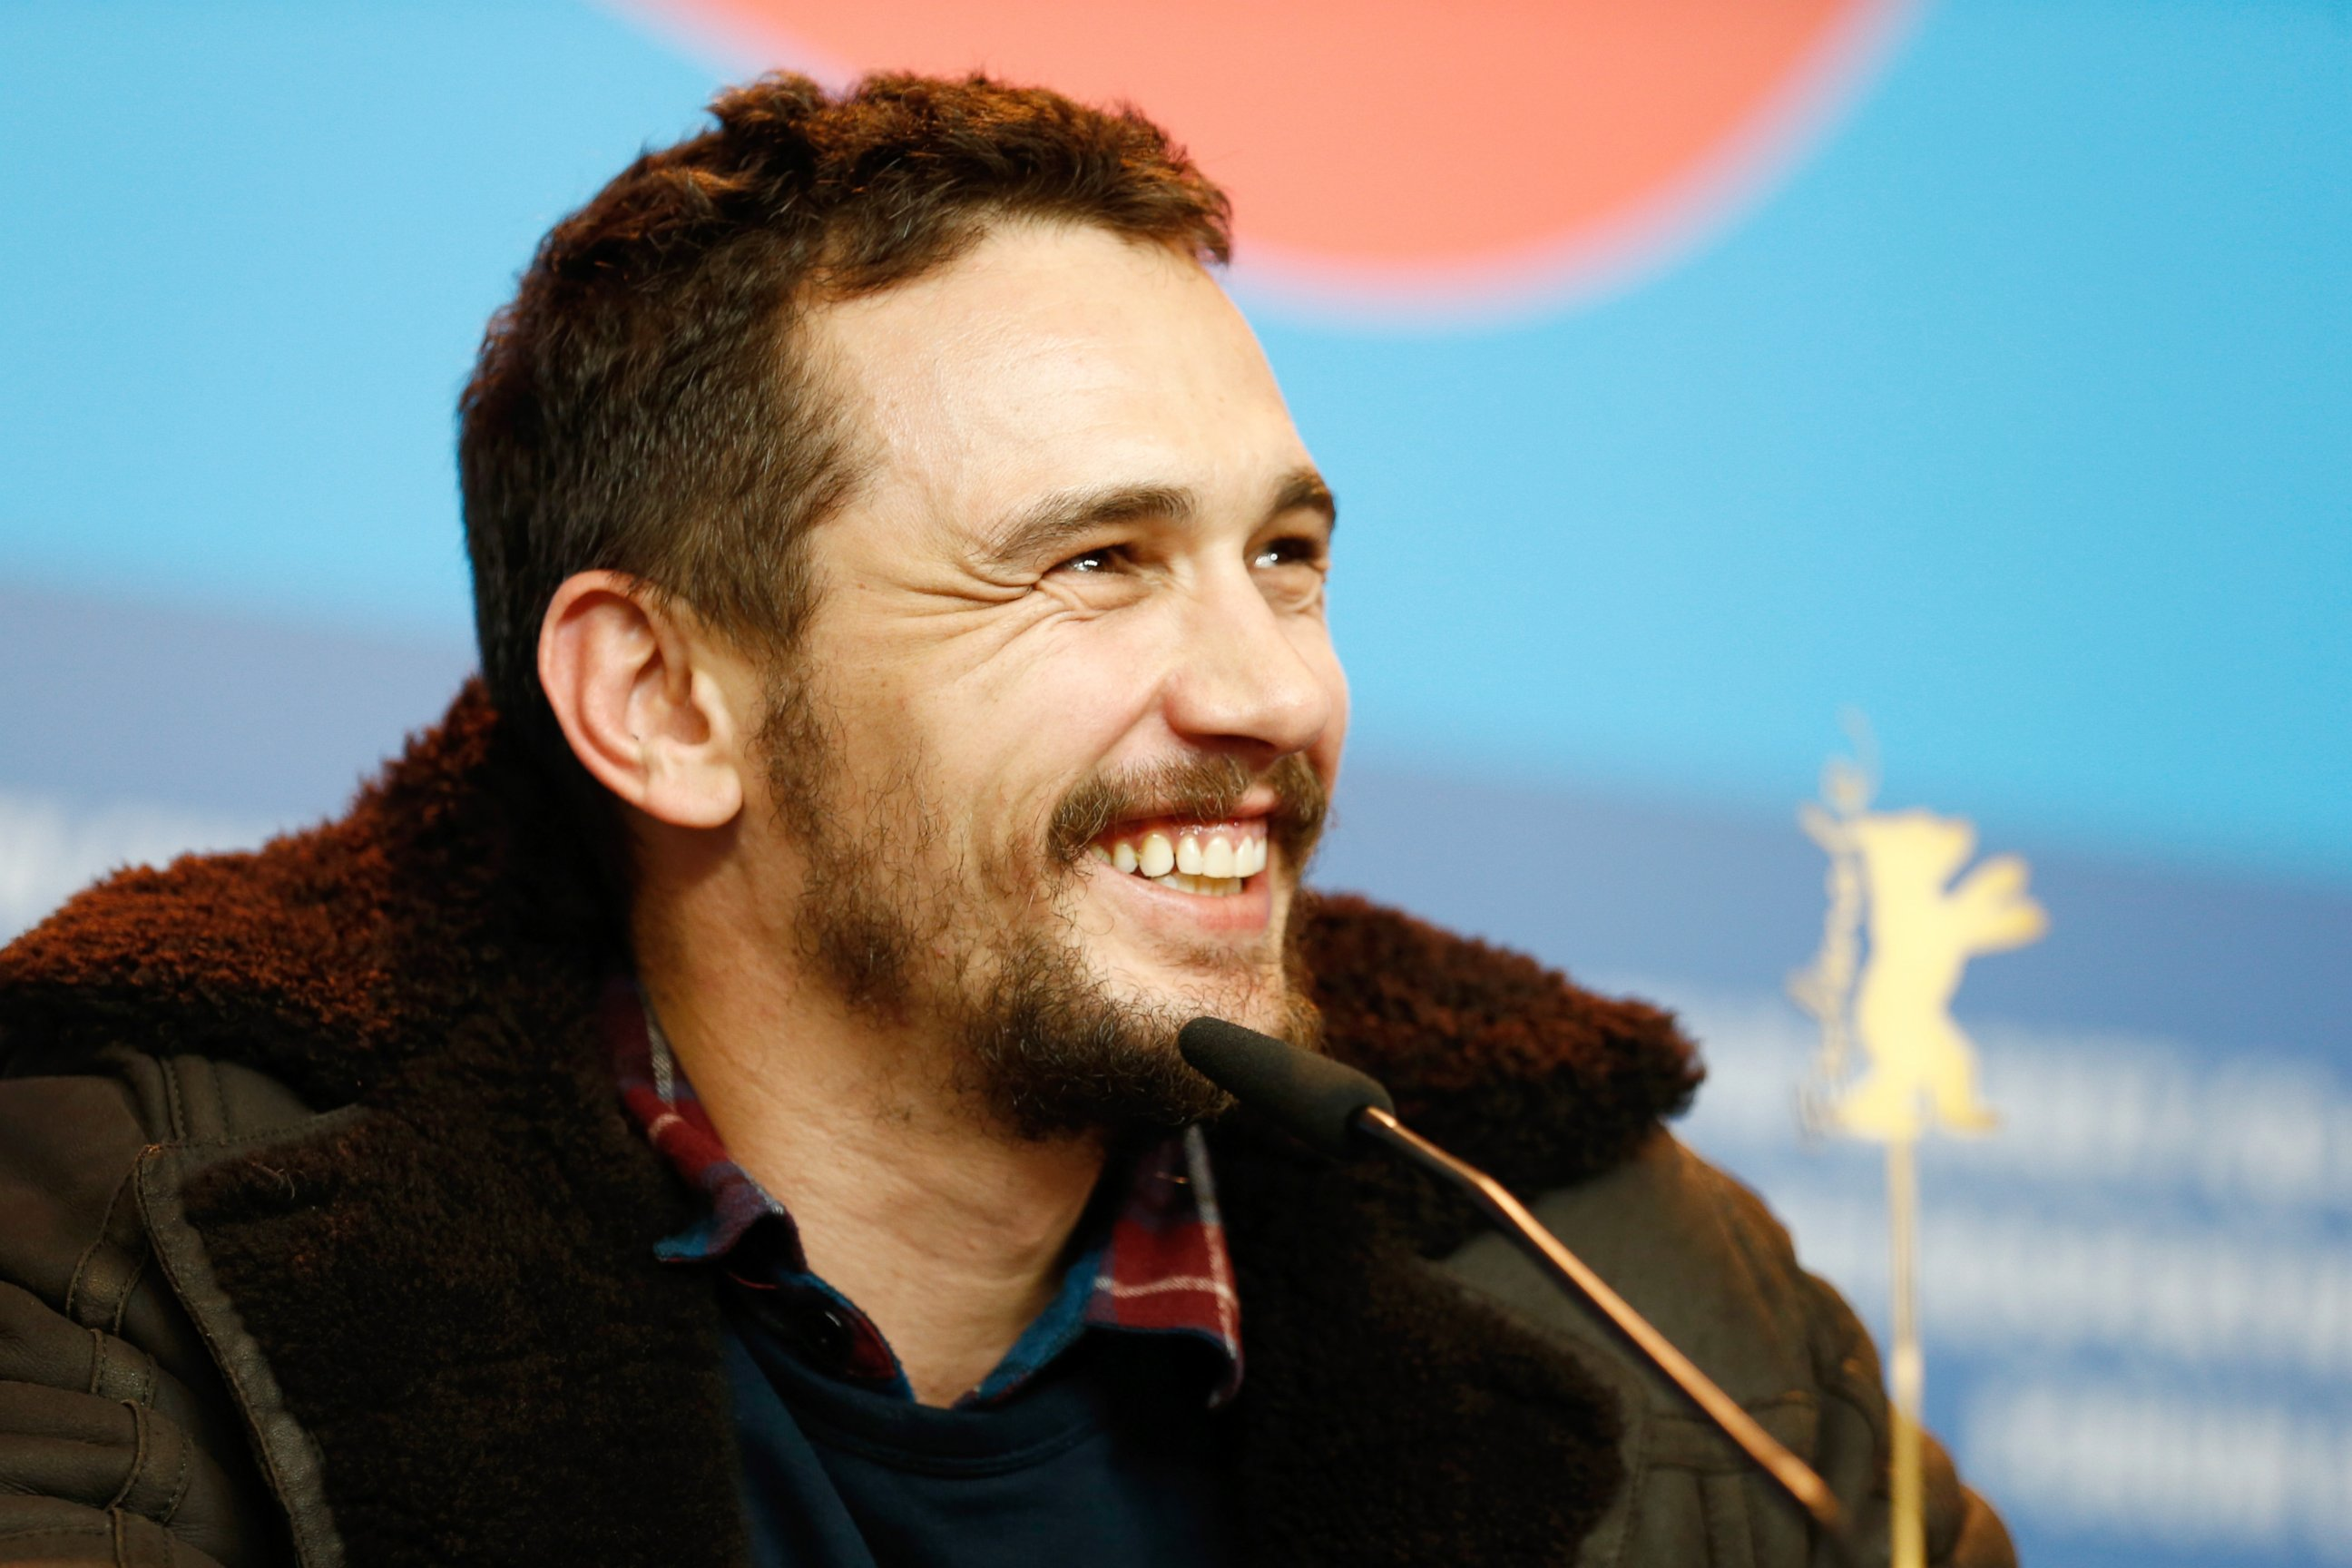 ... james franco felicity jones wed 25 mar 2015 james franco tue 3 mar James Franco